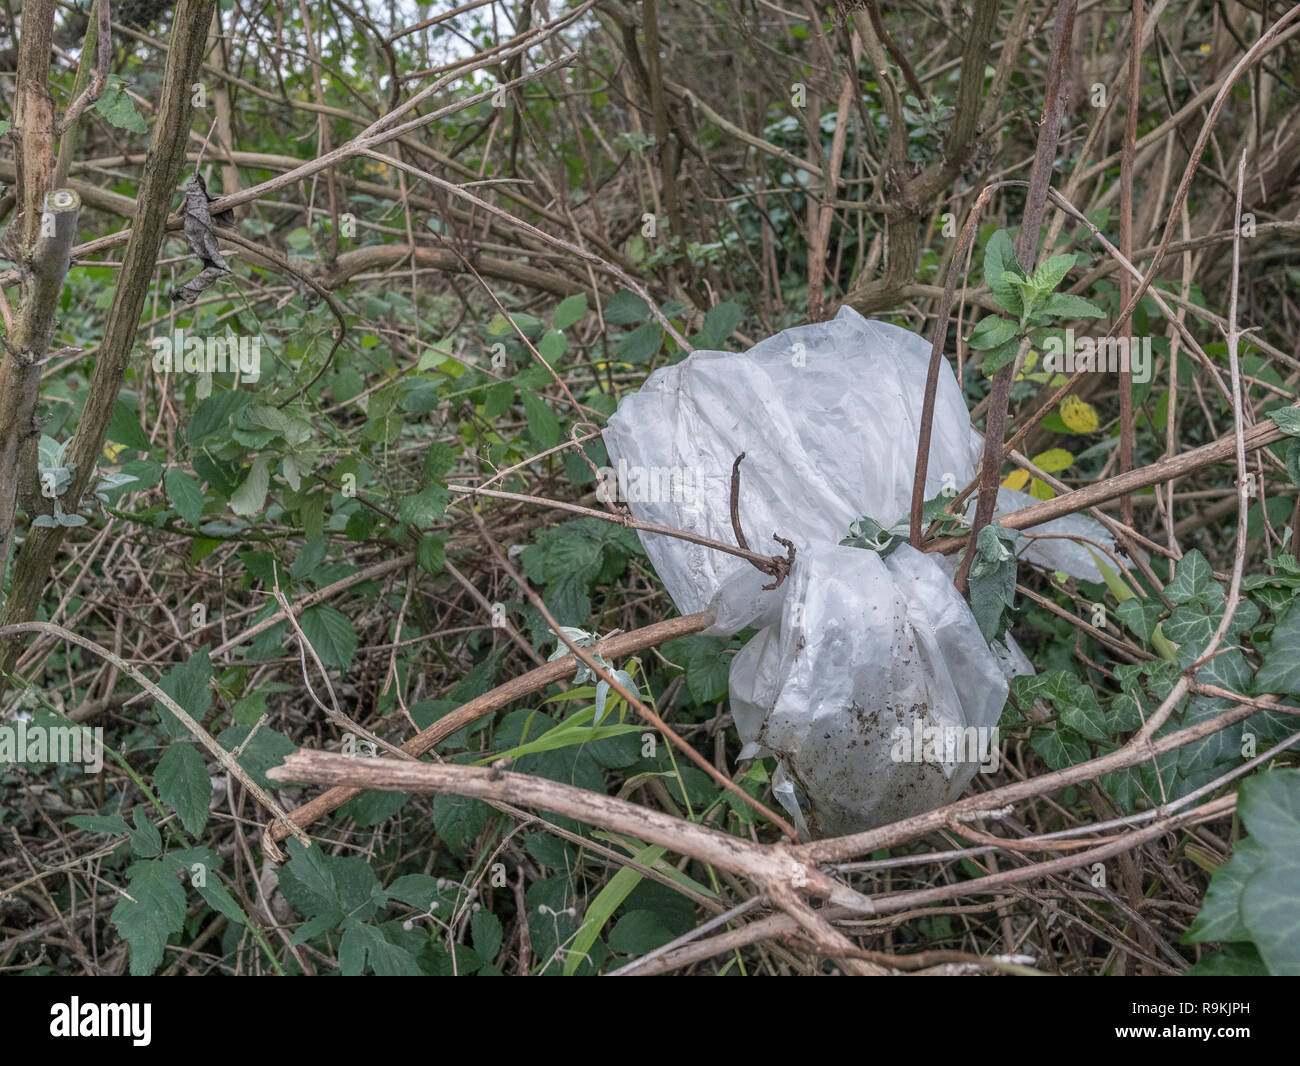 Plastic sheet discarded in rural hedgerow. Metaphor plastic pollution, environmental pollution, war on plastic waste, plastic rubbish. Stock Photo